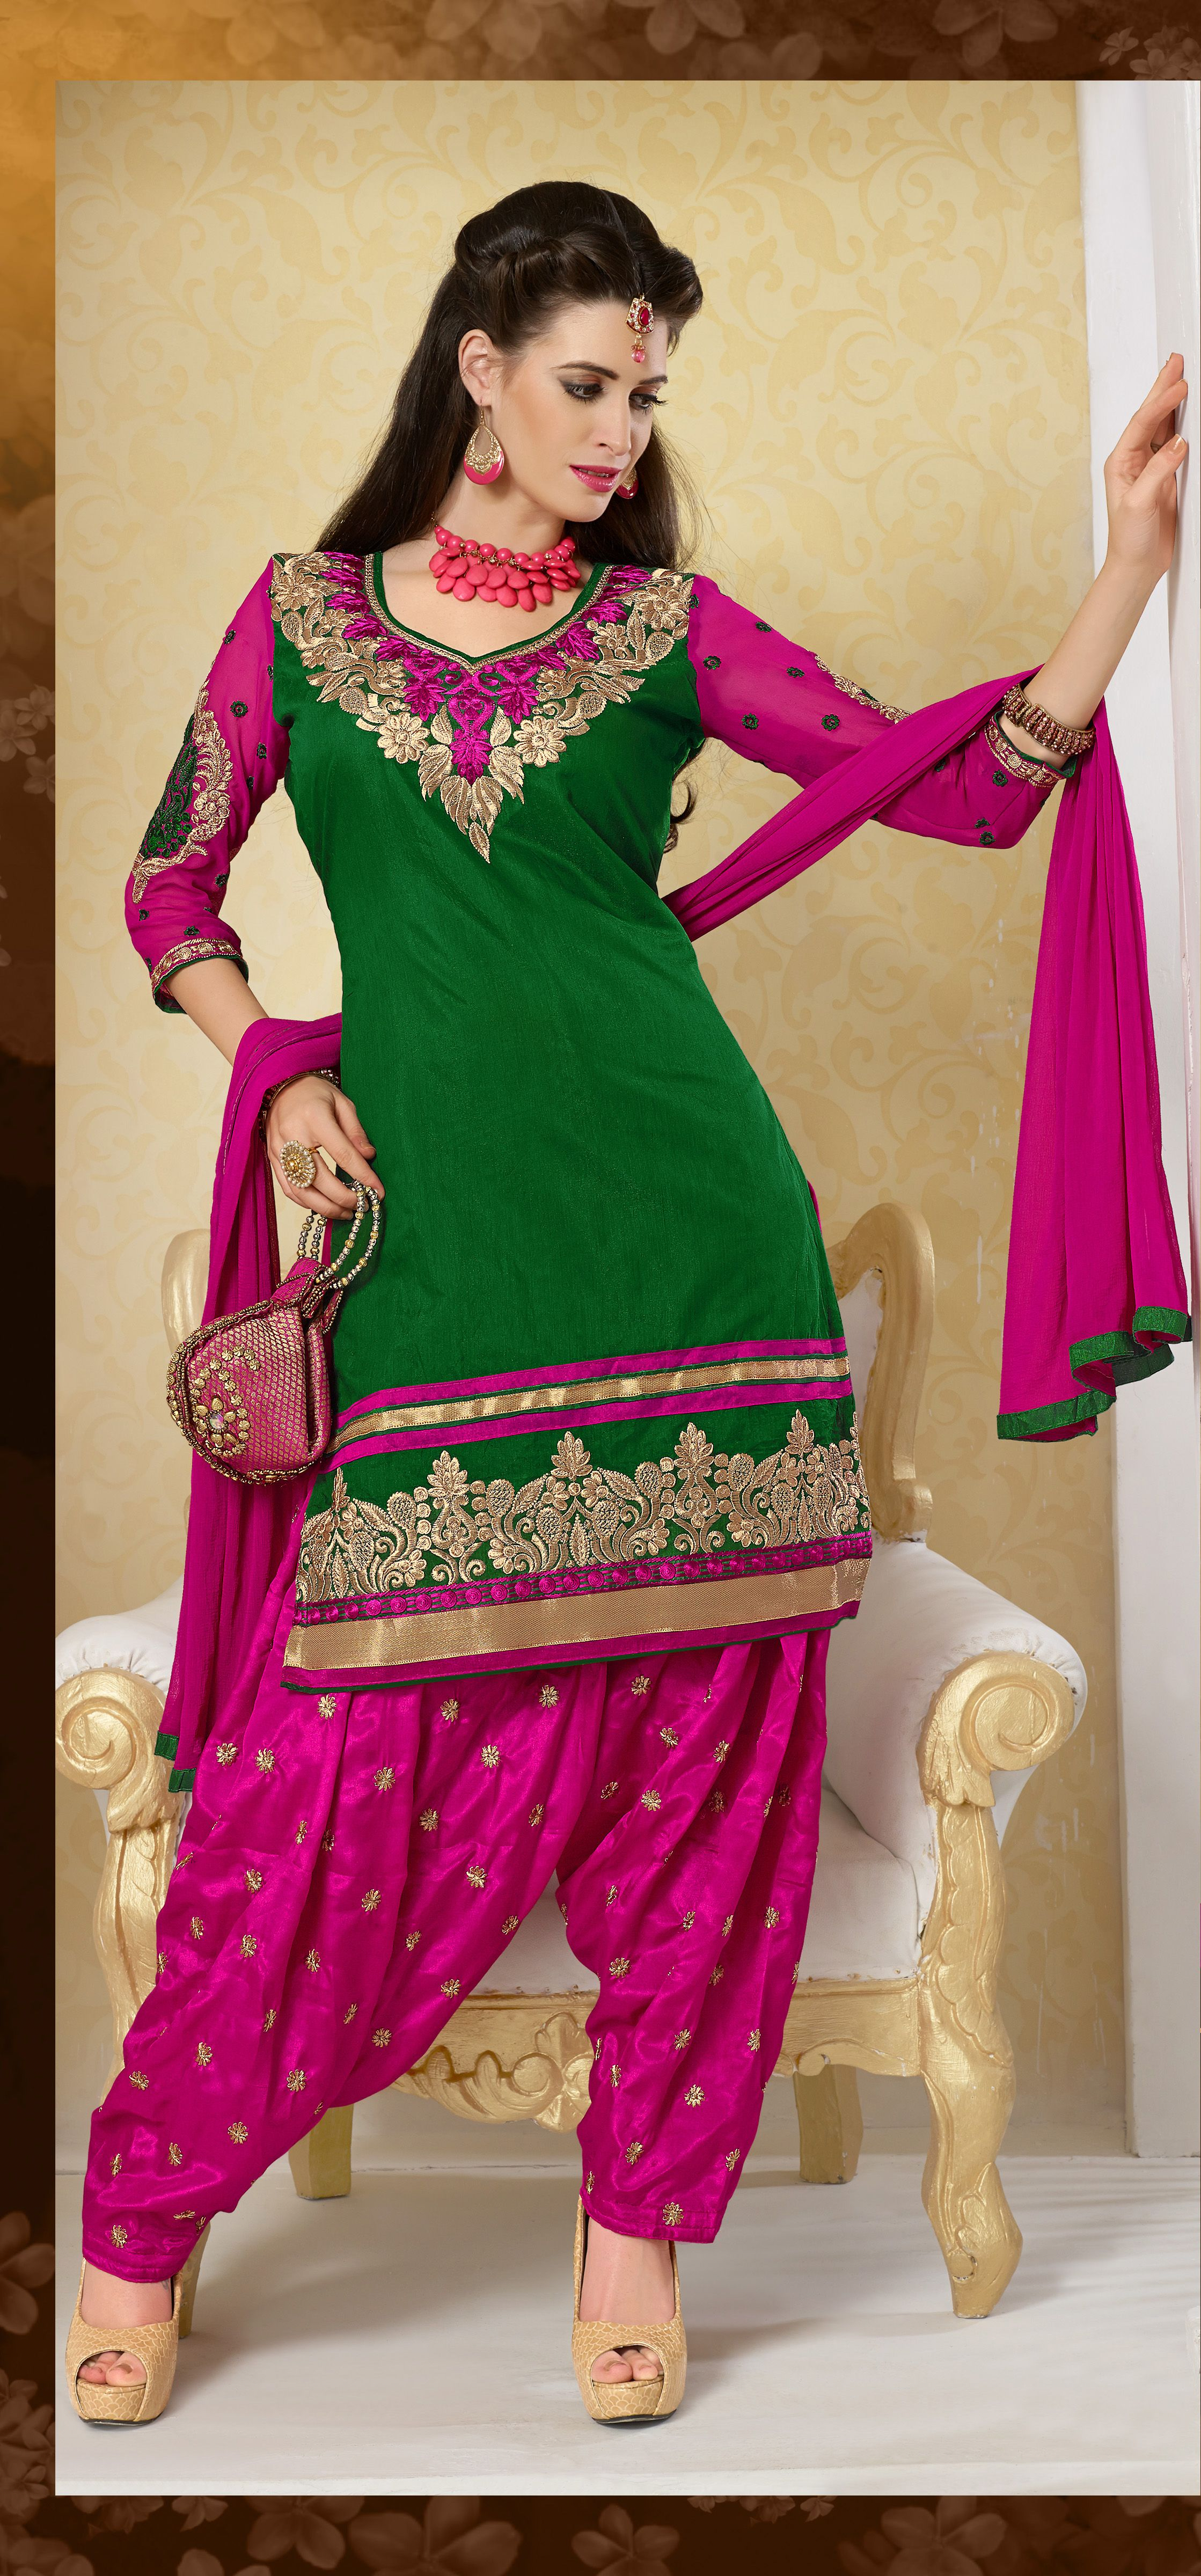 9319ddefd9 Lovely designer Punjabi Salwar suit in Green with pink great combination  comes with pink chiffon dupatta.